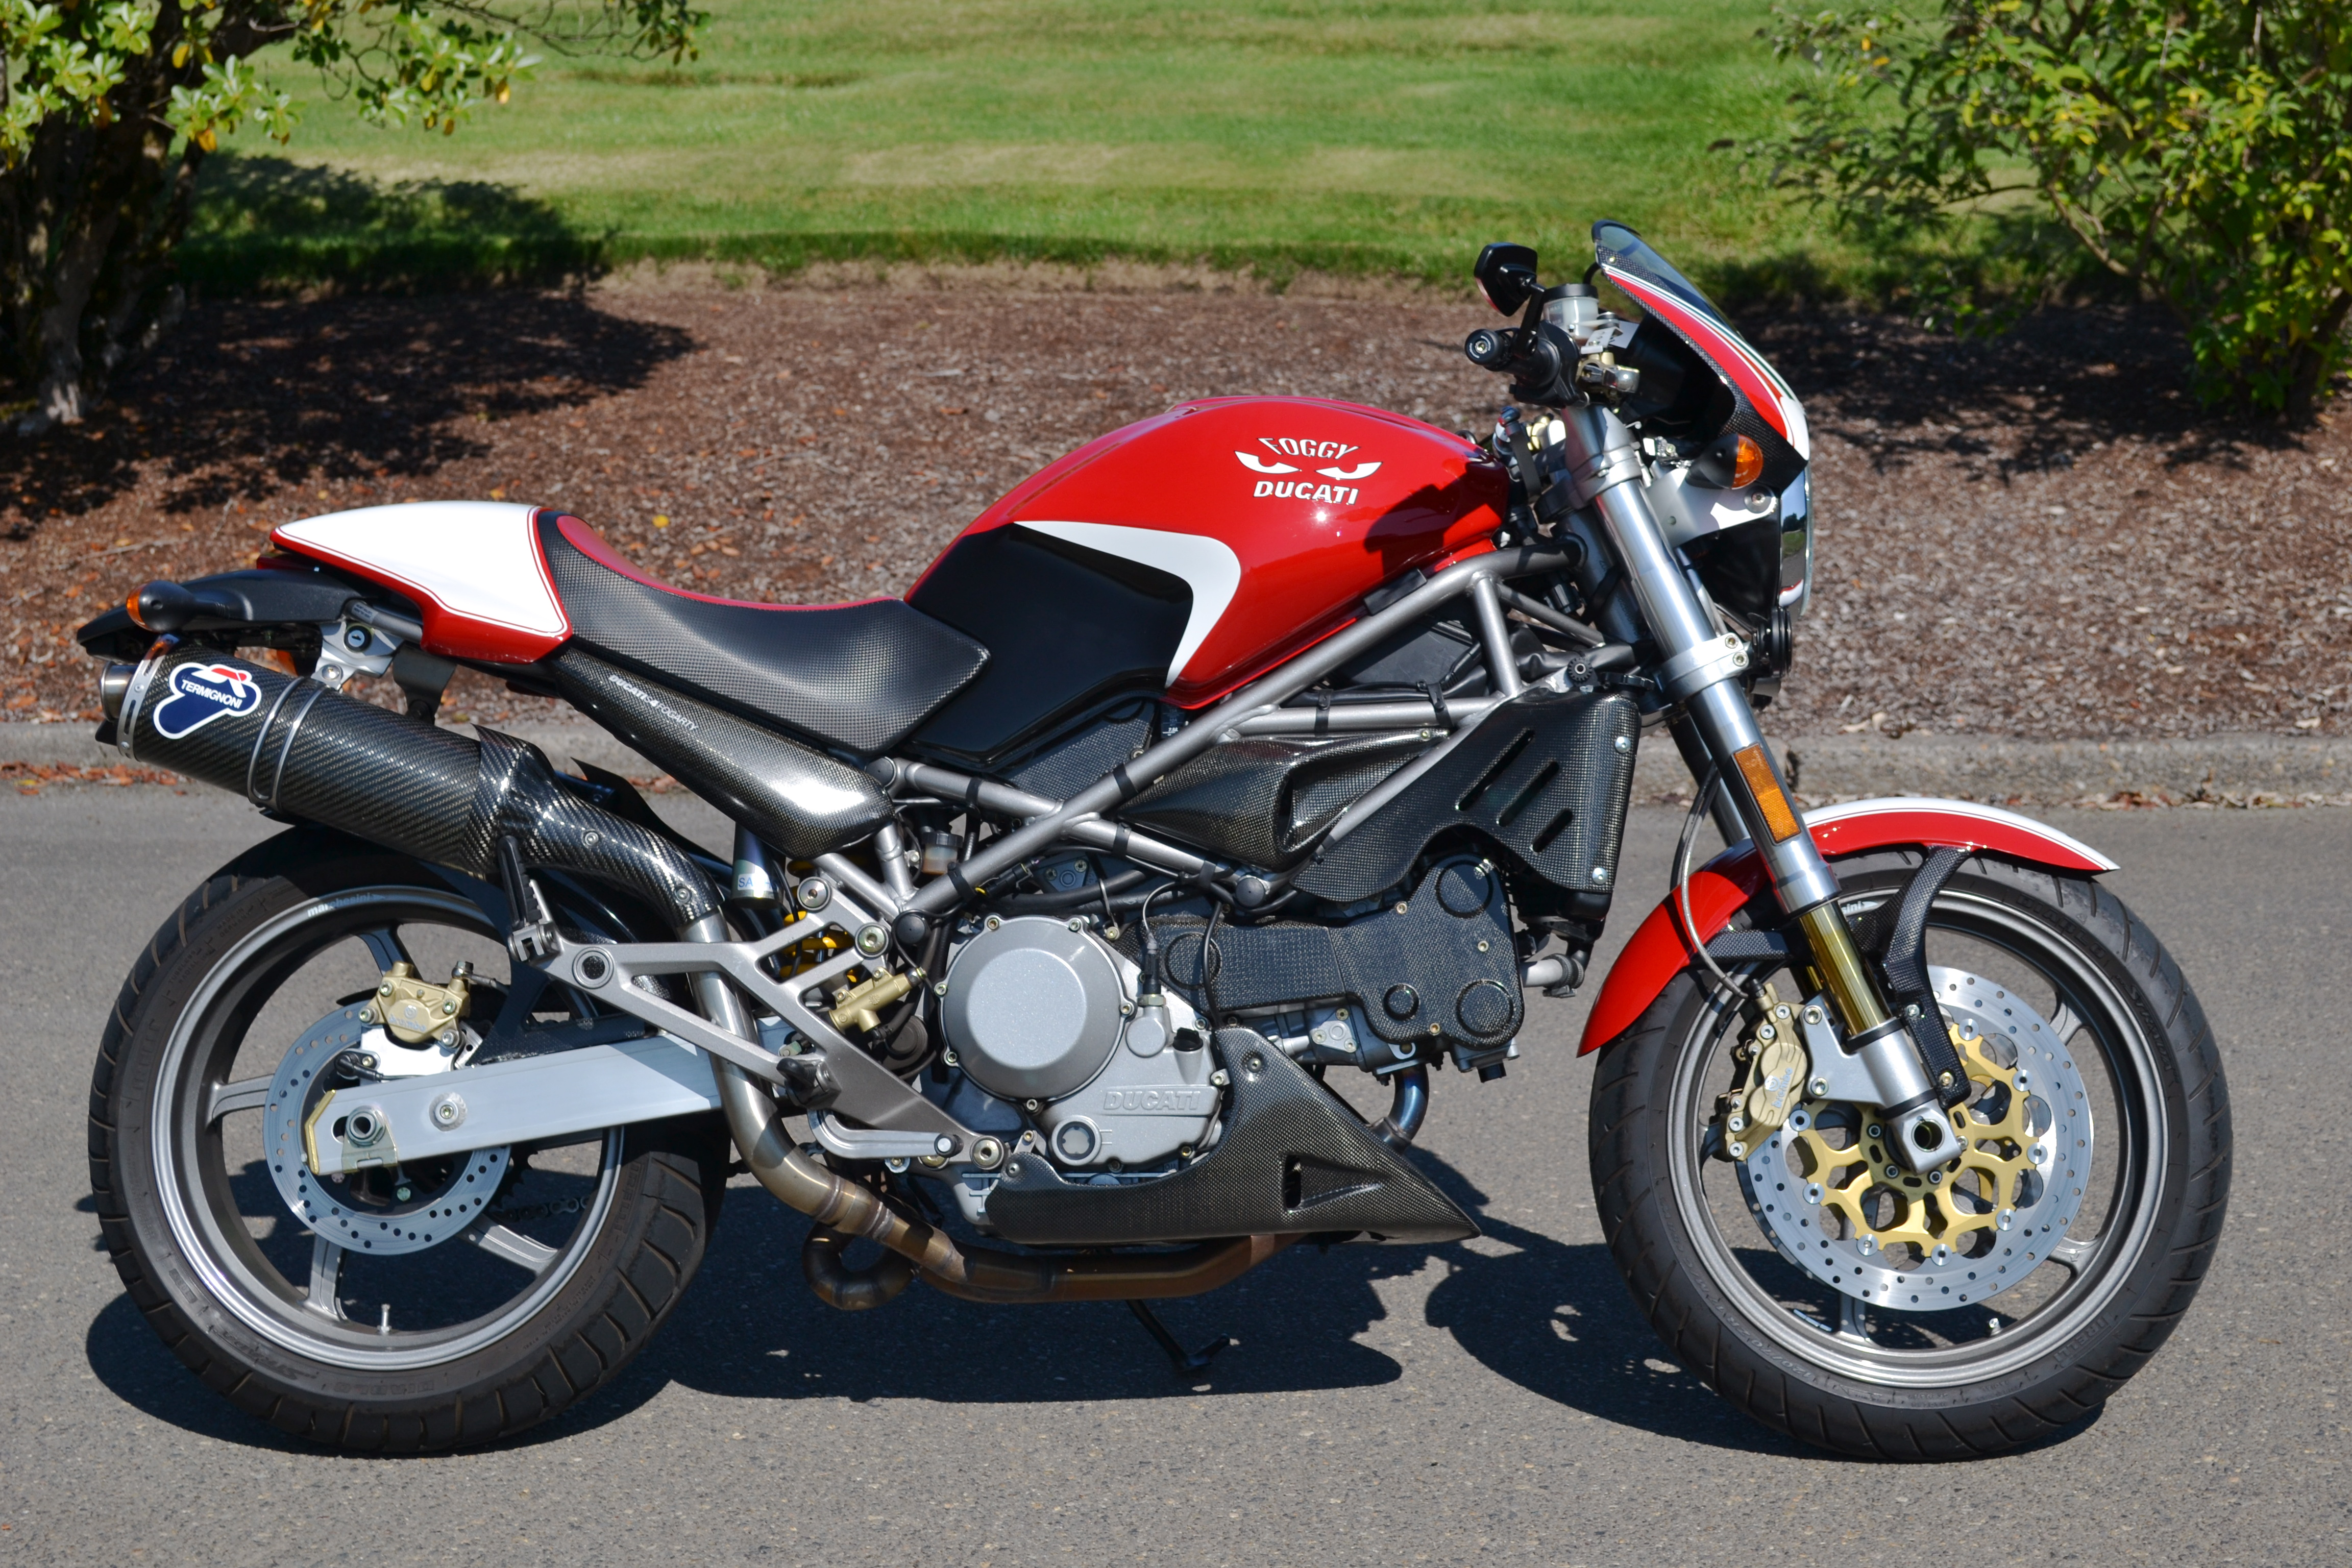 Ducati 900 Monster S 1998 images #78781